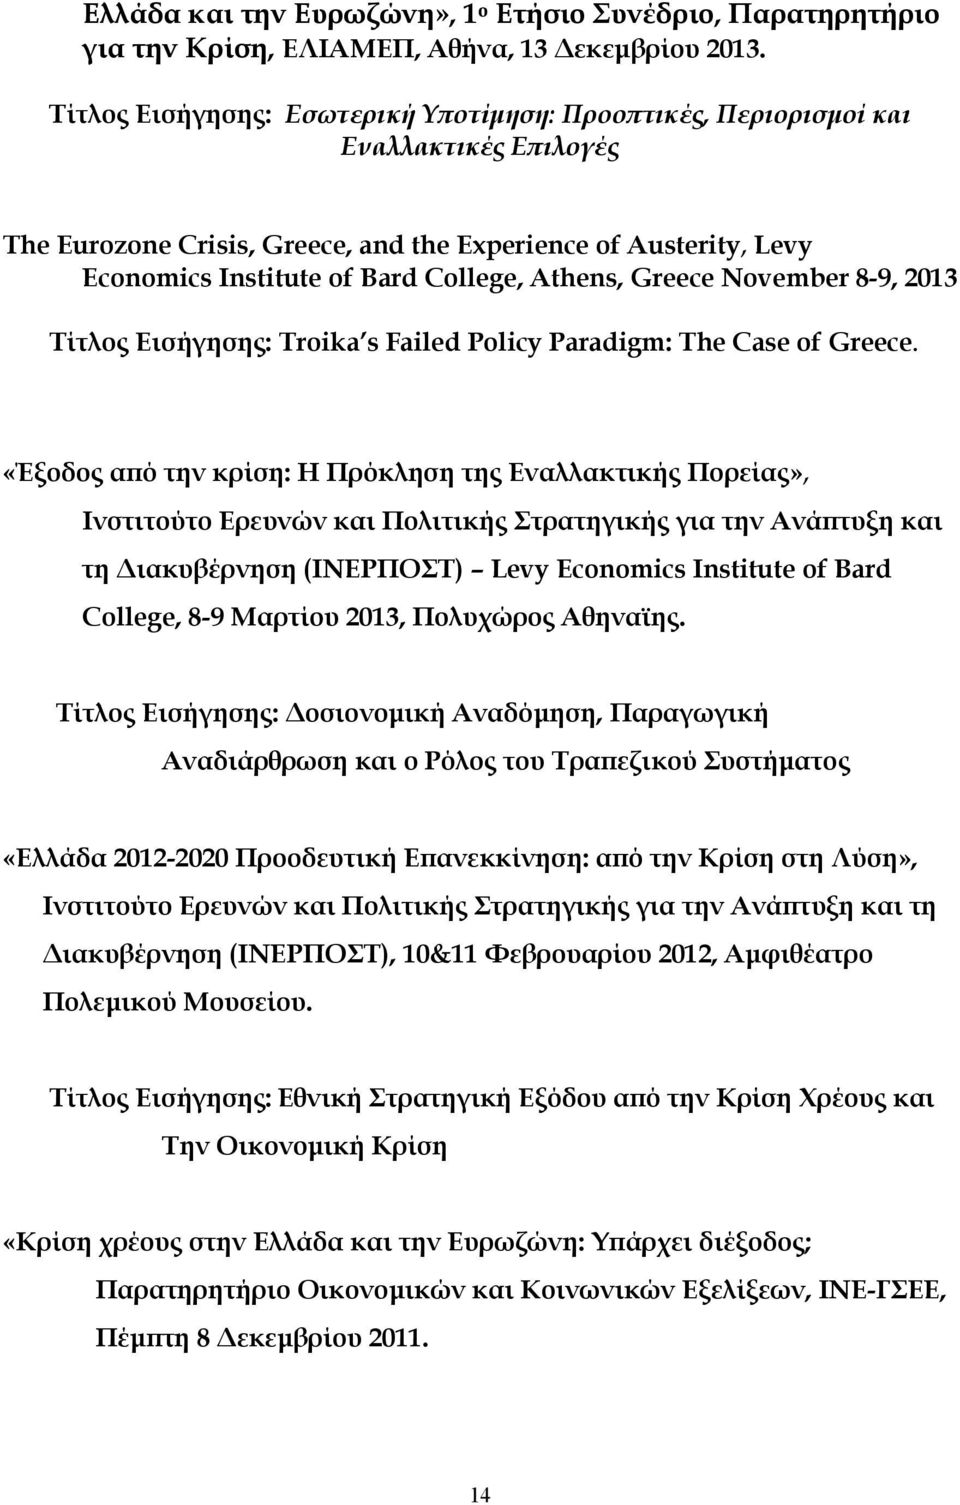 Athens, Greece November 8-9, 2013 Τίτλος Εισήγησης: Troika s Failed Policy Paradigm: The Case of Greece.